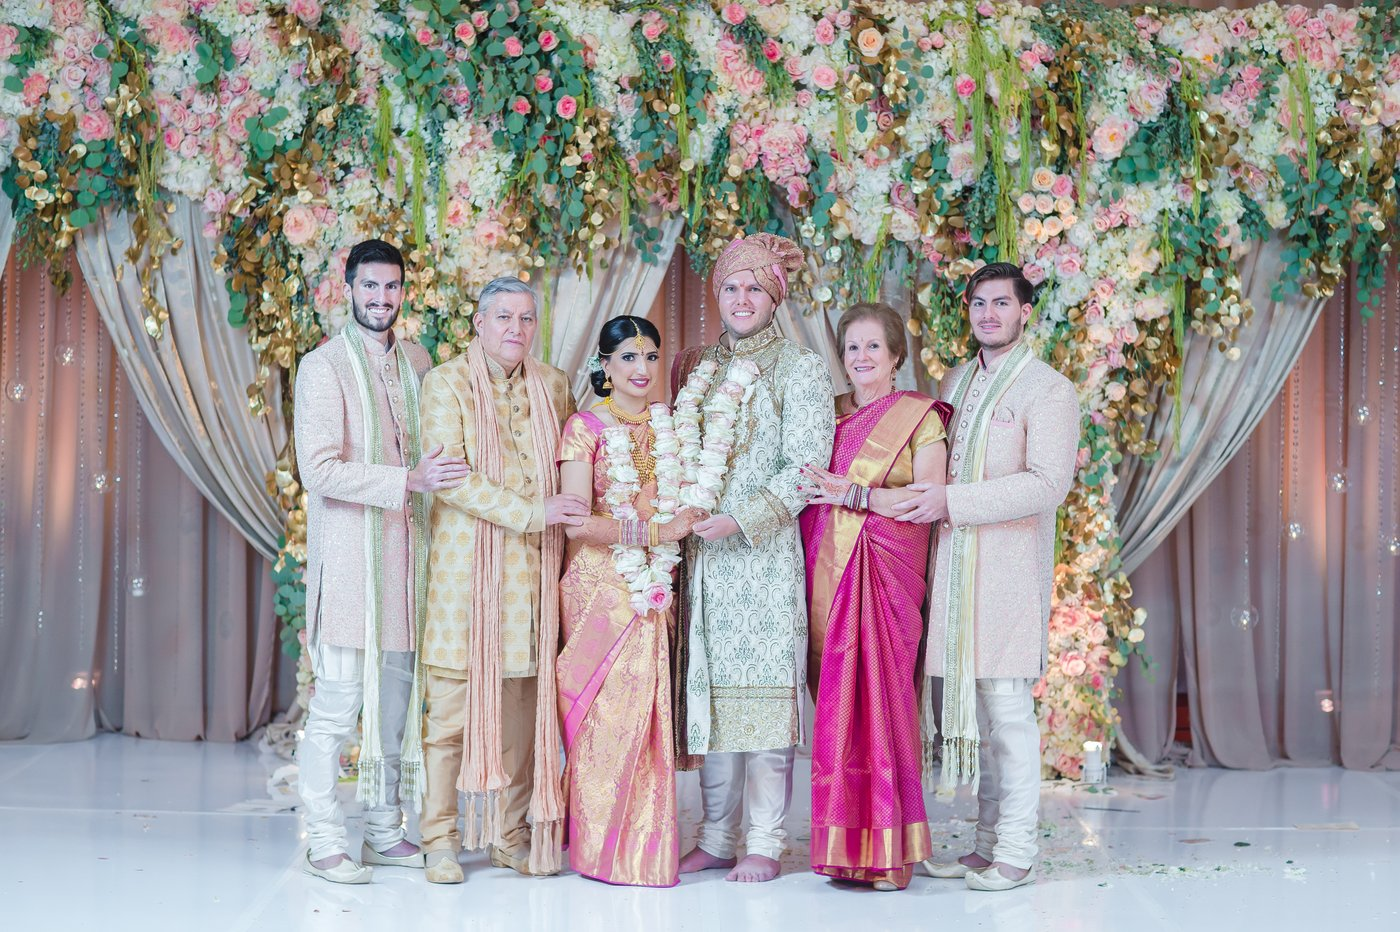 Sample Wedding Day Family Portraits, Miami Wedding Photographers | Häring Photography, Indian Wedding Photographer in Florida, Best Muslim, Hindu - South East Asian Wedding Photographers